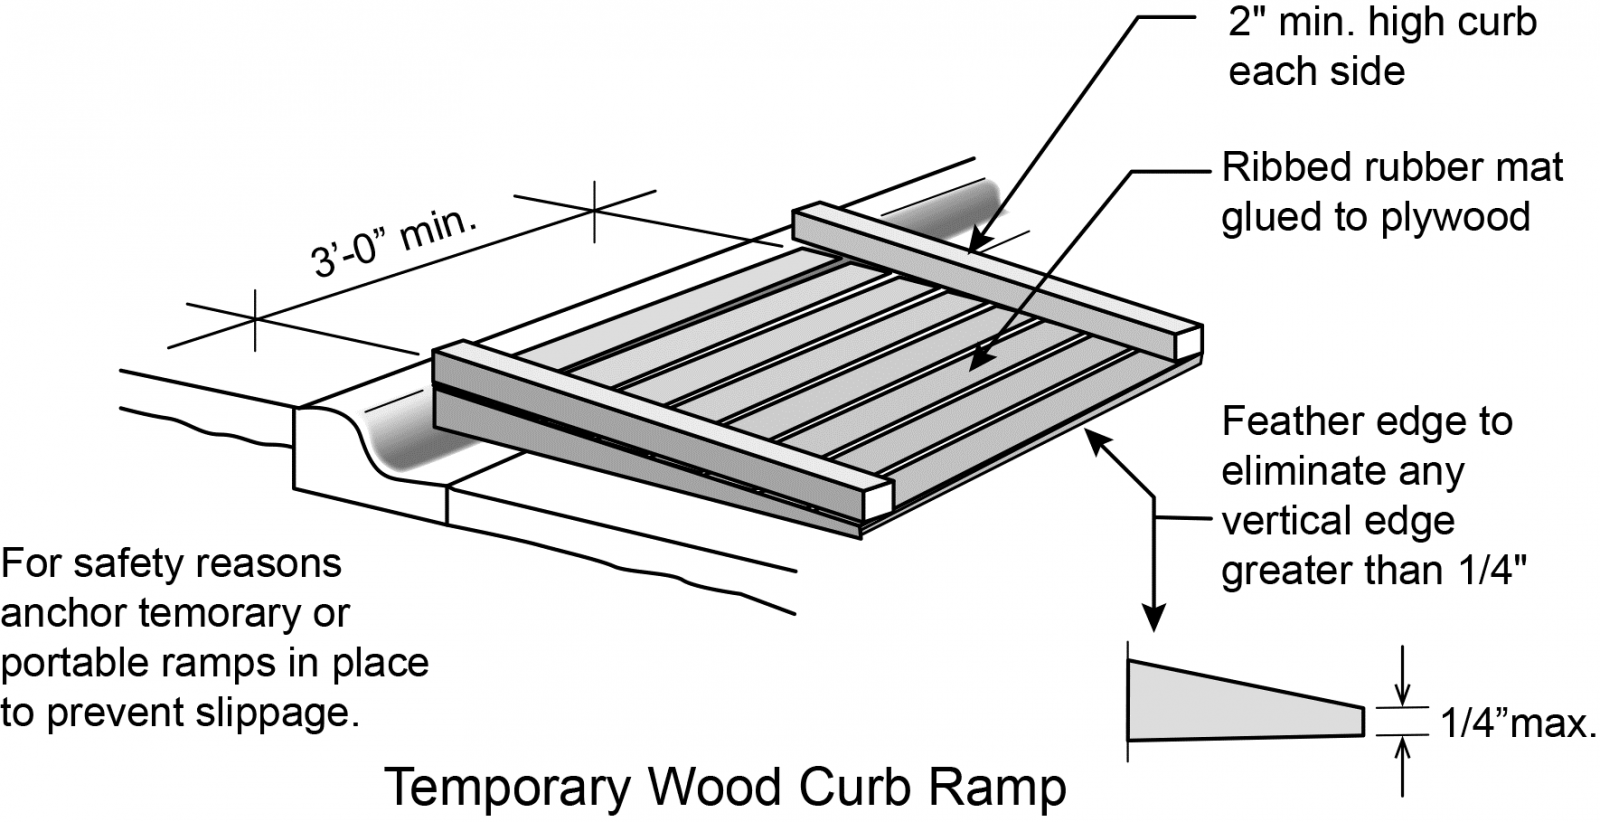 Figure 4: Temporary wood ramp is anchored in place against curb to prevent slippage. Edge guards are a minimum of 2 inches high on each side. Ribbed bummer mat is glued to the plywood ramp. Feather edges to eliminate any vertical edge great than ¼ inch